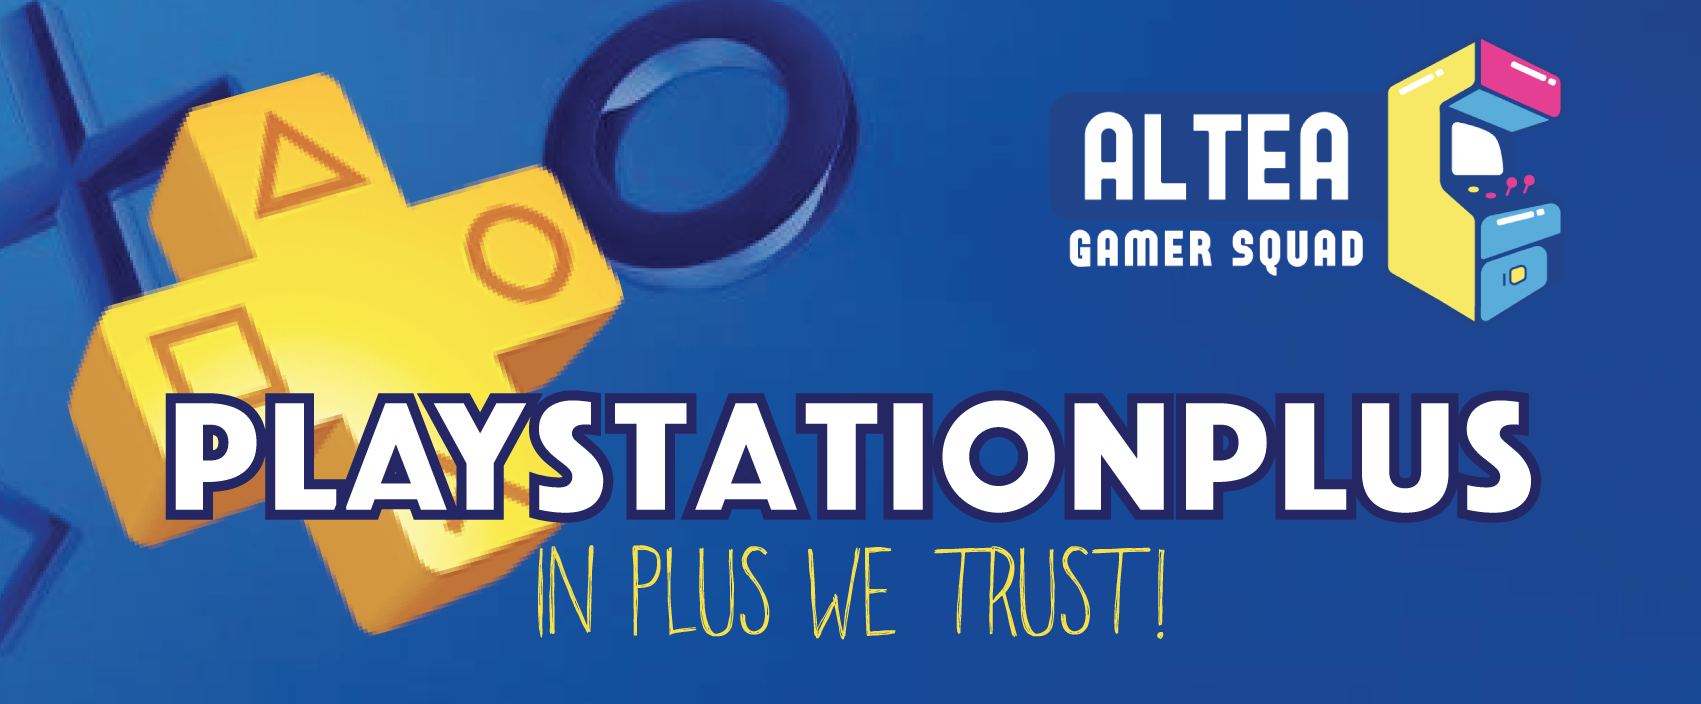 Un anno di Playstation Plus!